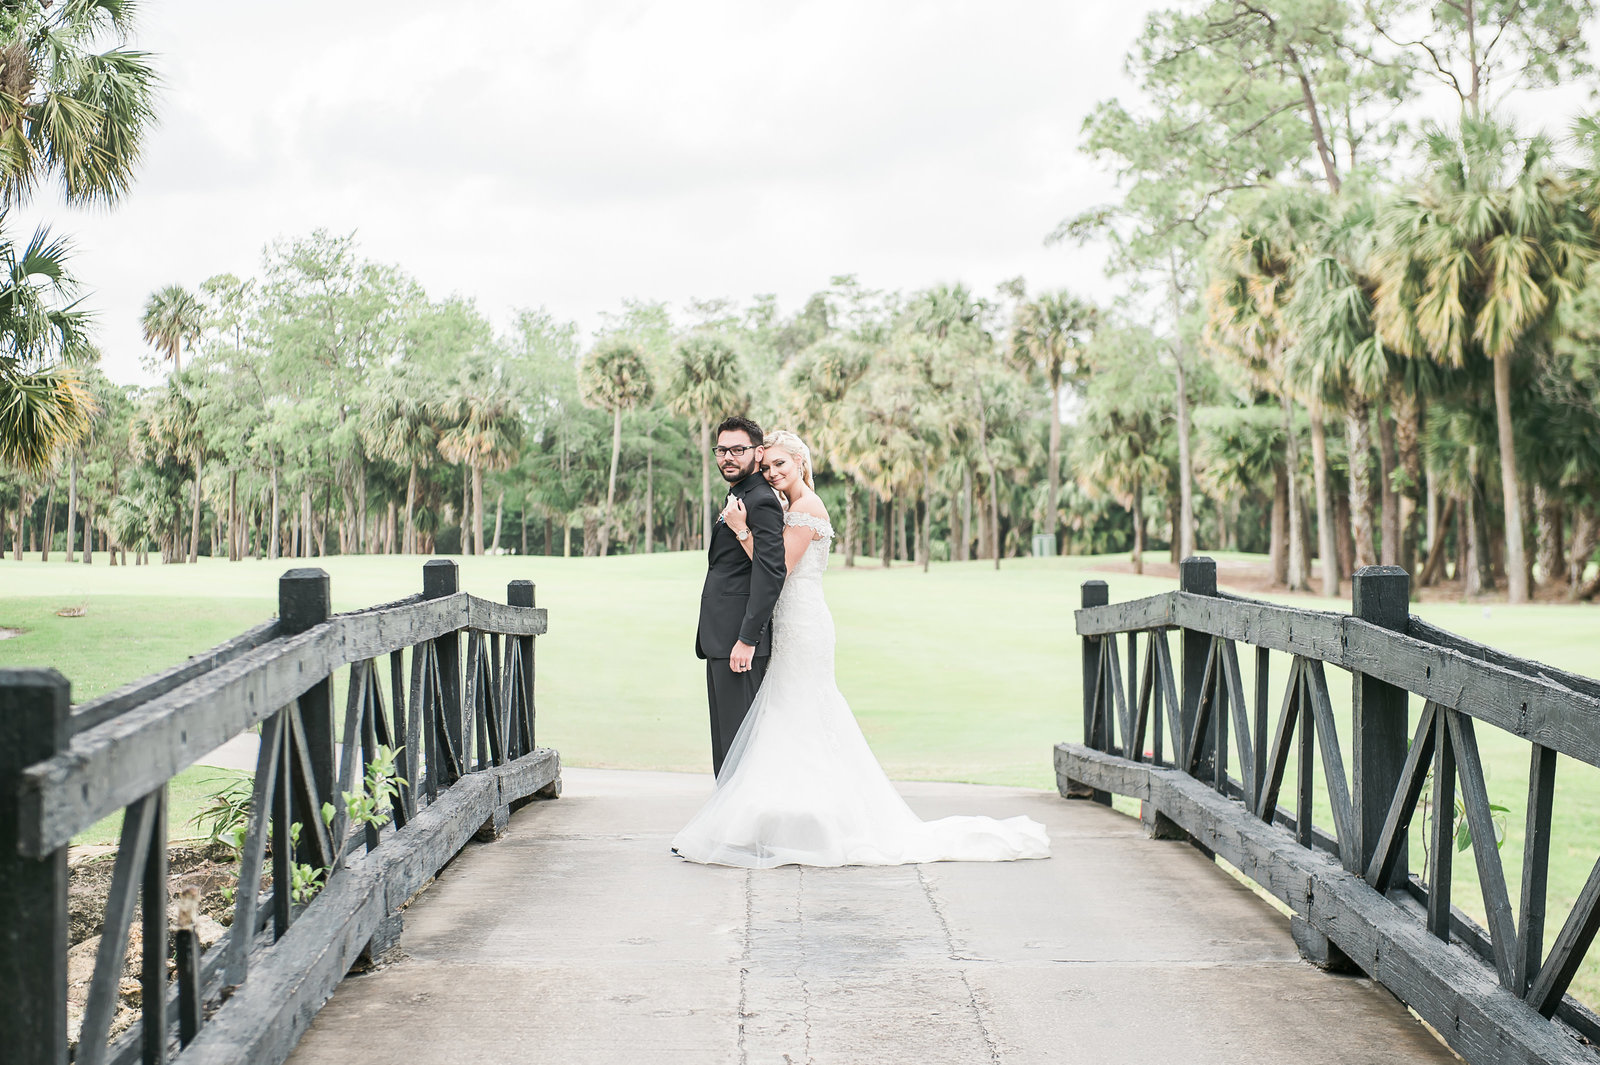 Snuggling Bride and Groom - Myacoo Country Club Wedding - Palm Beach Wedding Photography by Palm Beach Photography, Inc.